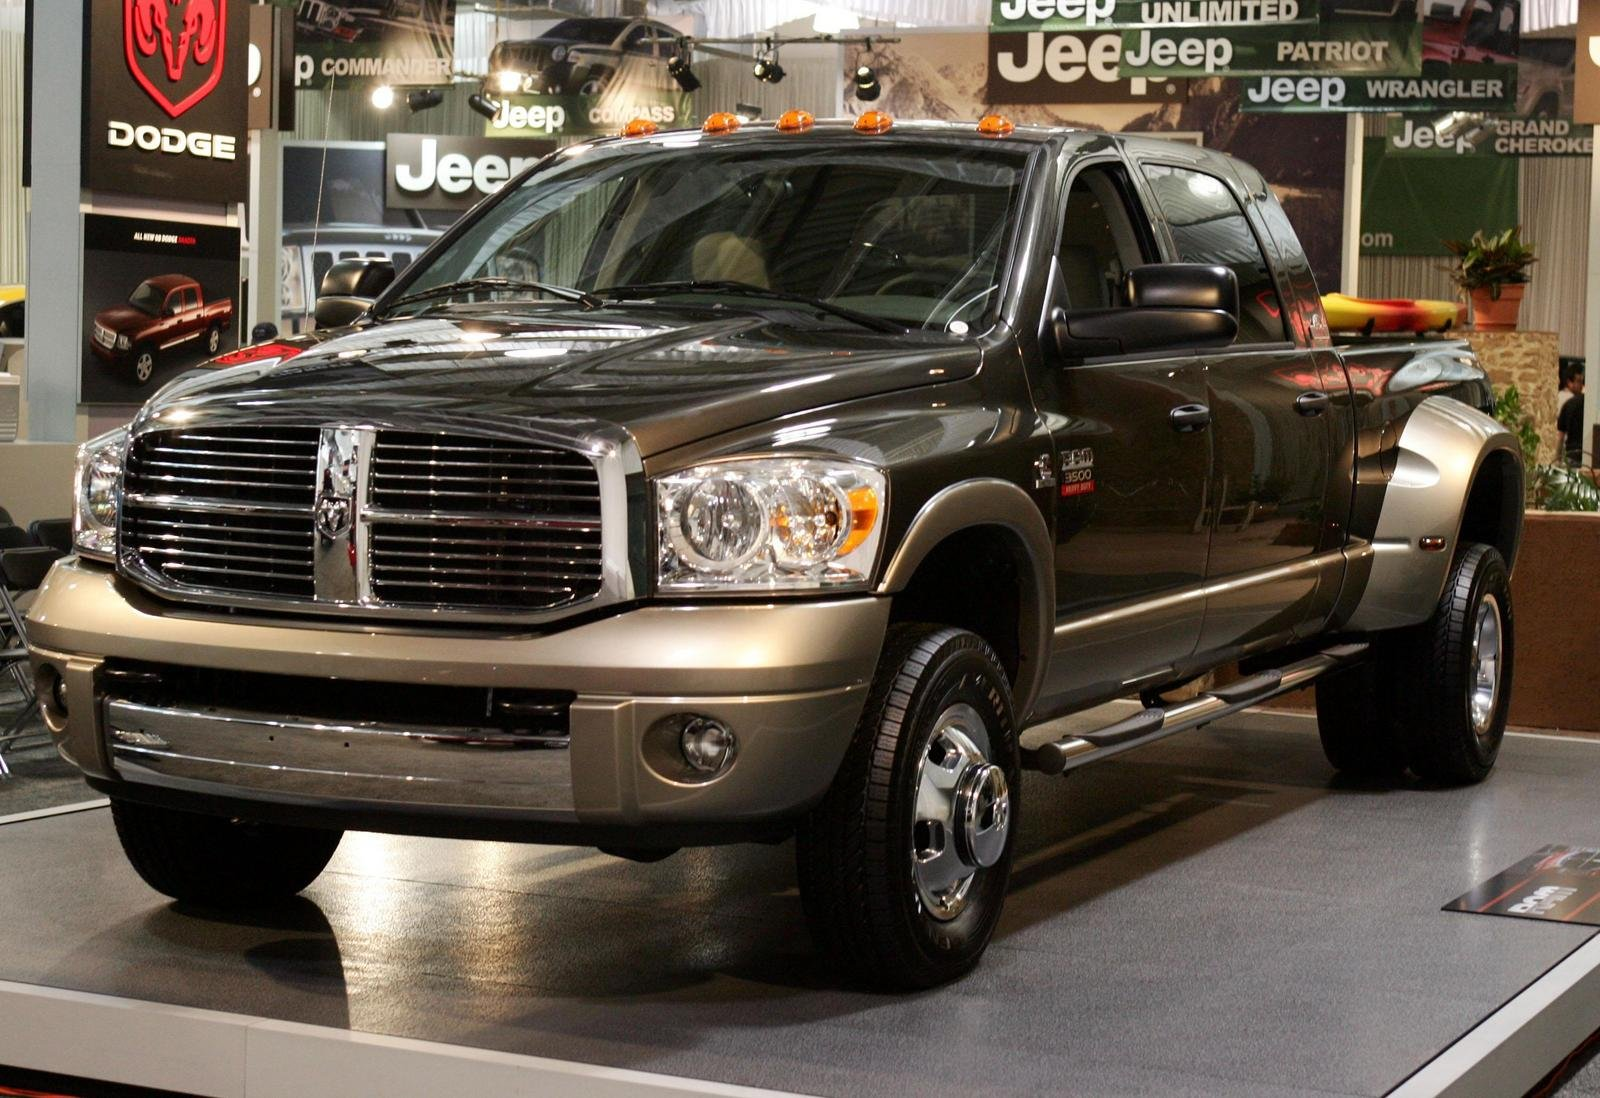 2007 dodge ram 3500 laramie mega cab resistol edition review top speed. Black Bedroom Furniture Sets. Home Design Ideas